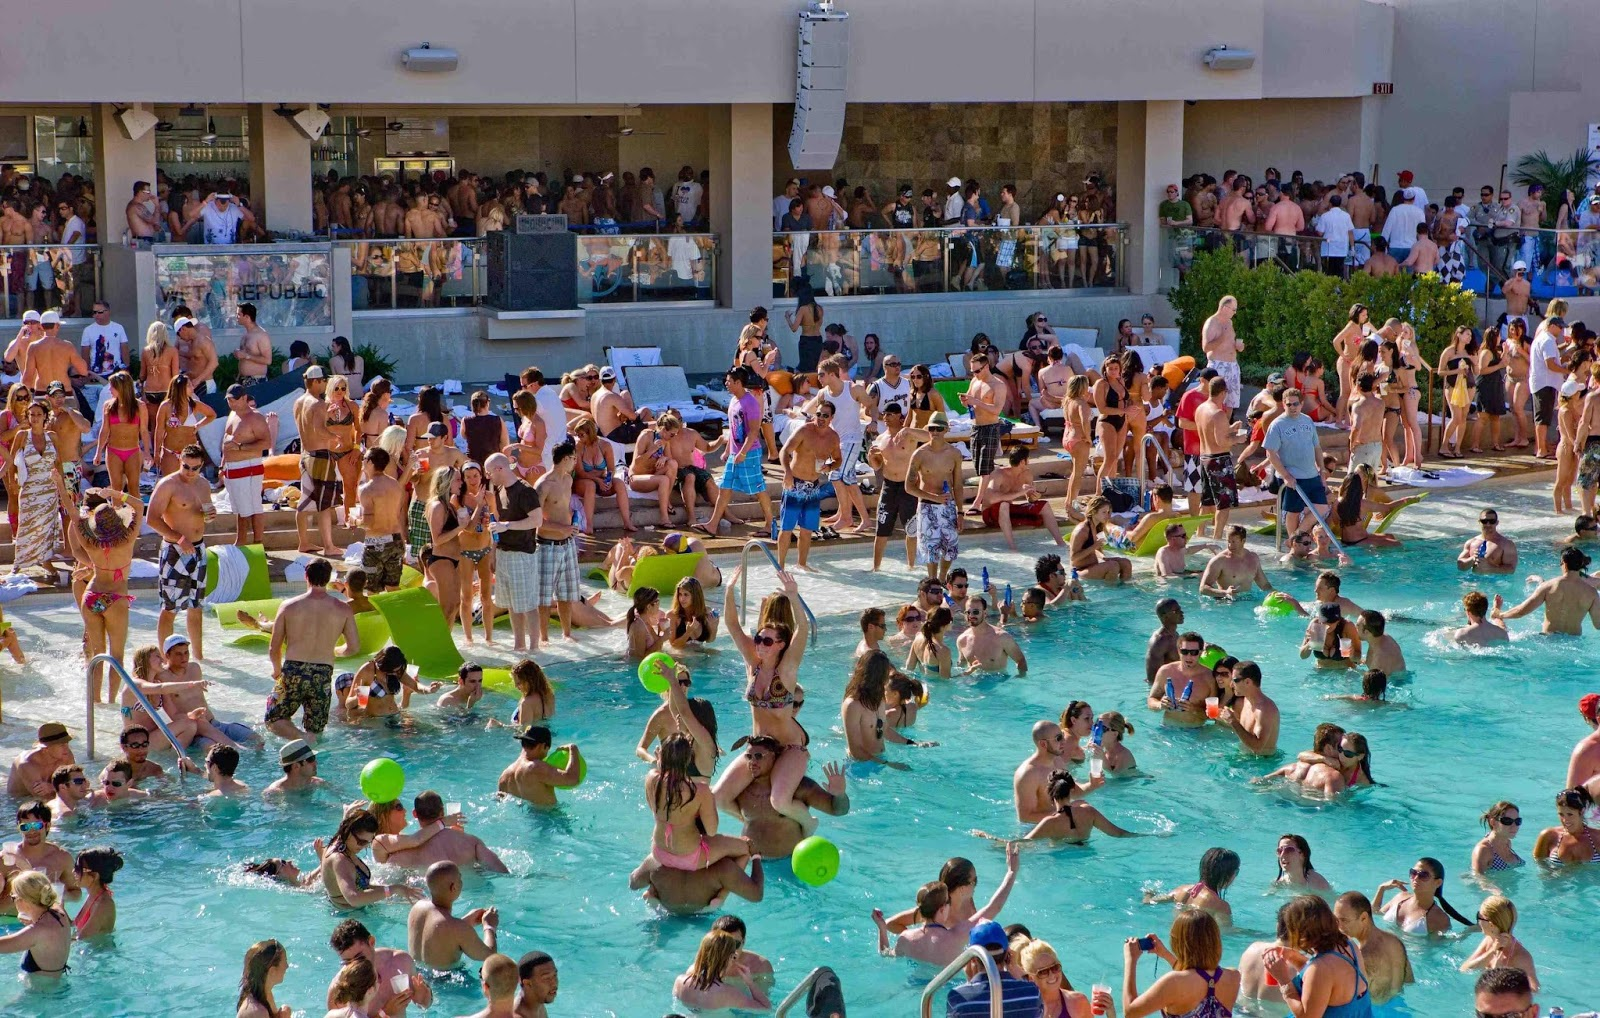 las-vegas-pool-parties-2.jpg